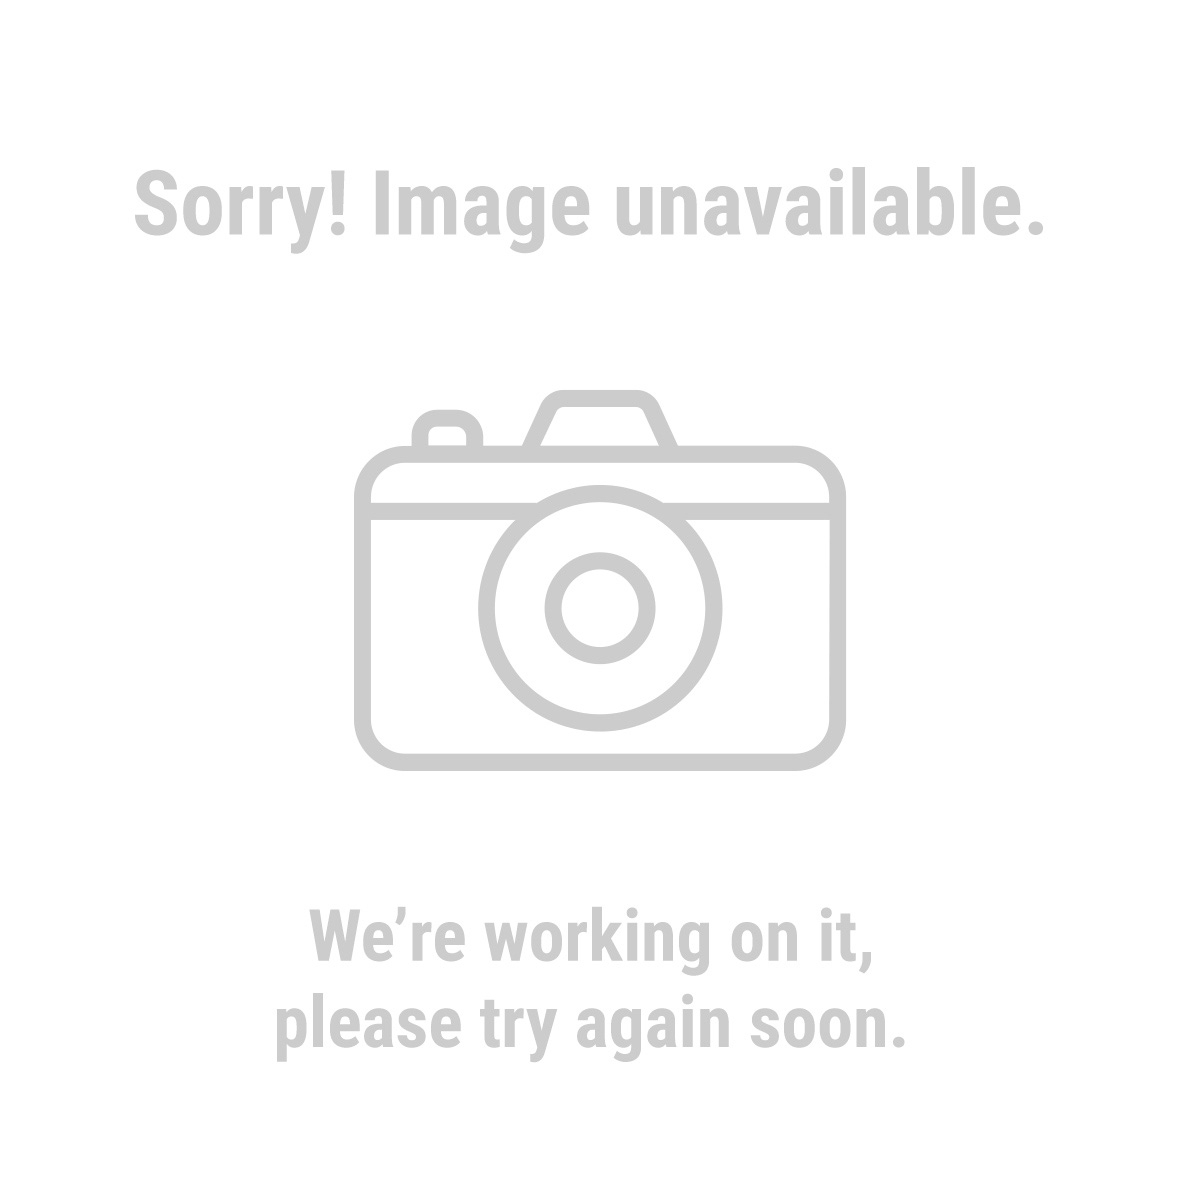 "Finch & McClay 67008 2-1/2"" Sash Brush"